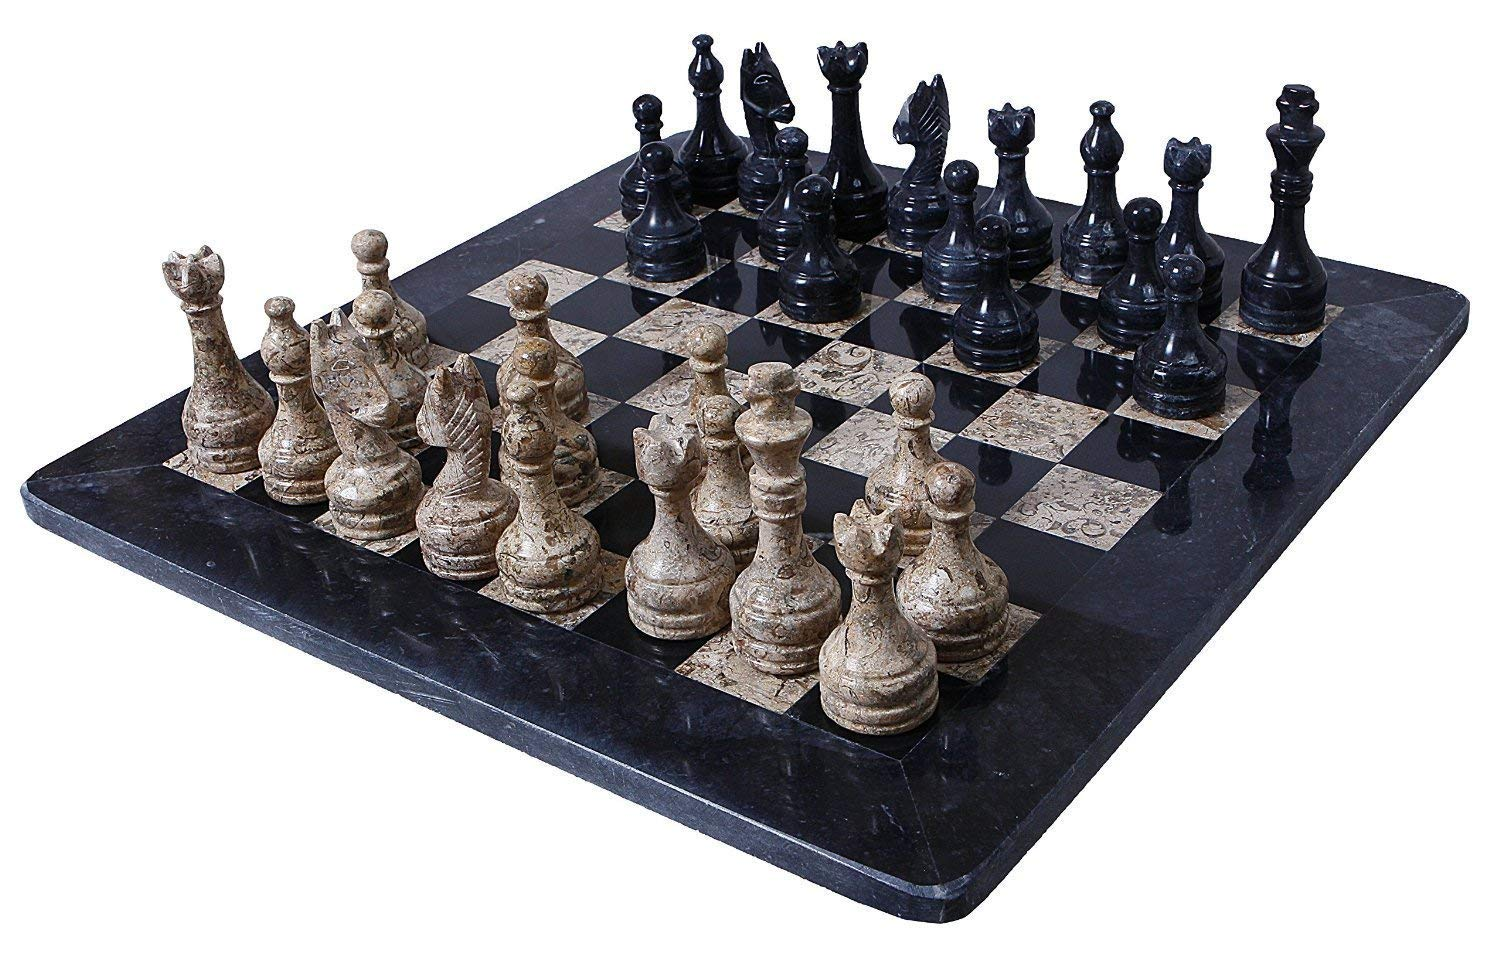 RADICALn Handmade Black and Fossil Coral Marble Chess Game Set